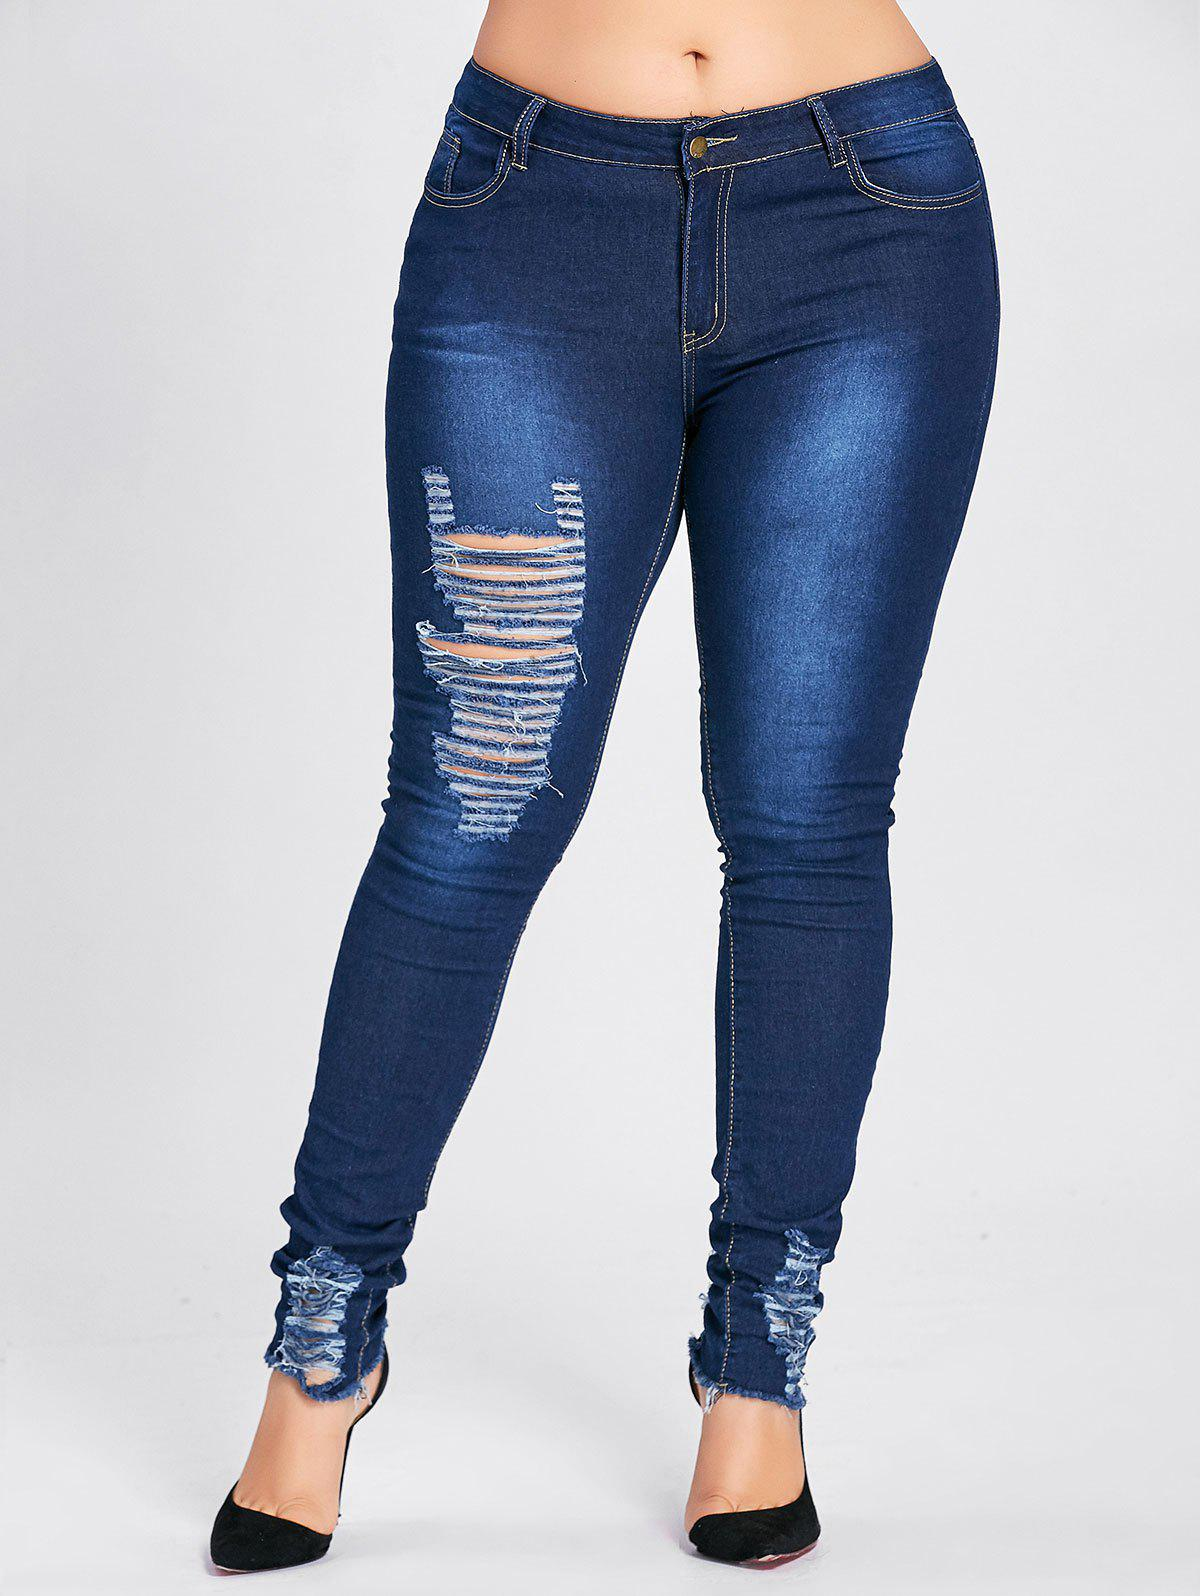 Plus Size Hole Destroyed High Waist JeansWOMEN<br><br>Size: 3XL; Color: CERULEAN; Style: Fashion; Length: Ninth; Material: Jeans; Fabric Type: Denim; Fit Type: Skinny; Waist Type: High; Closure Type: Zipper Fly; Pattern Type: Solid; Embellishment: Hole,Hollow Out; Pant Style: Pencil Pants; Weight: 0.4500kg; Package Contents: 1 x Jeans;